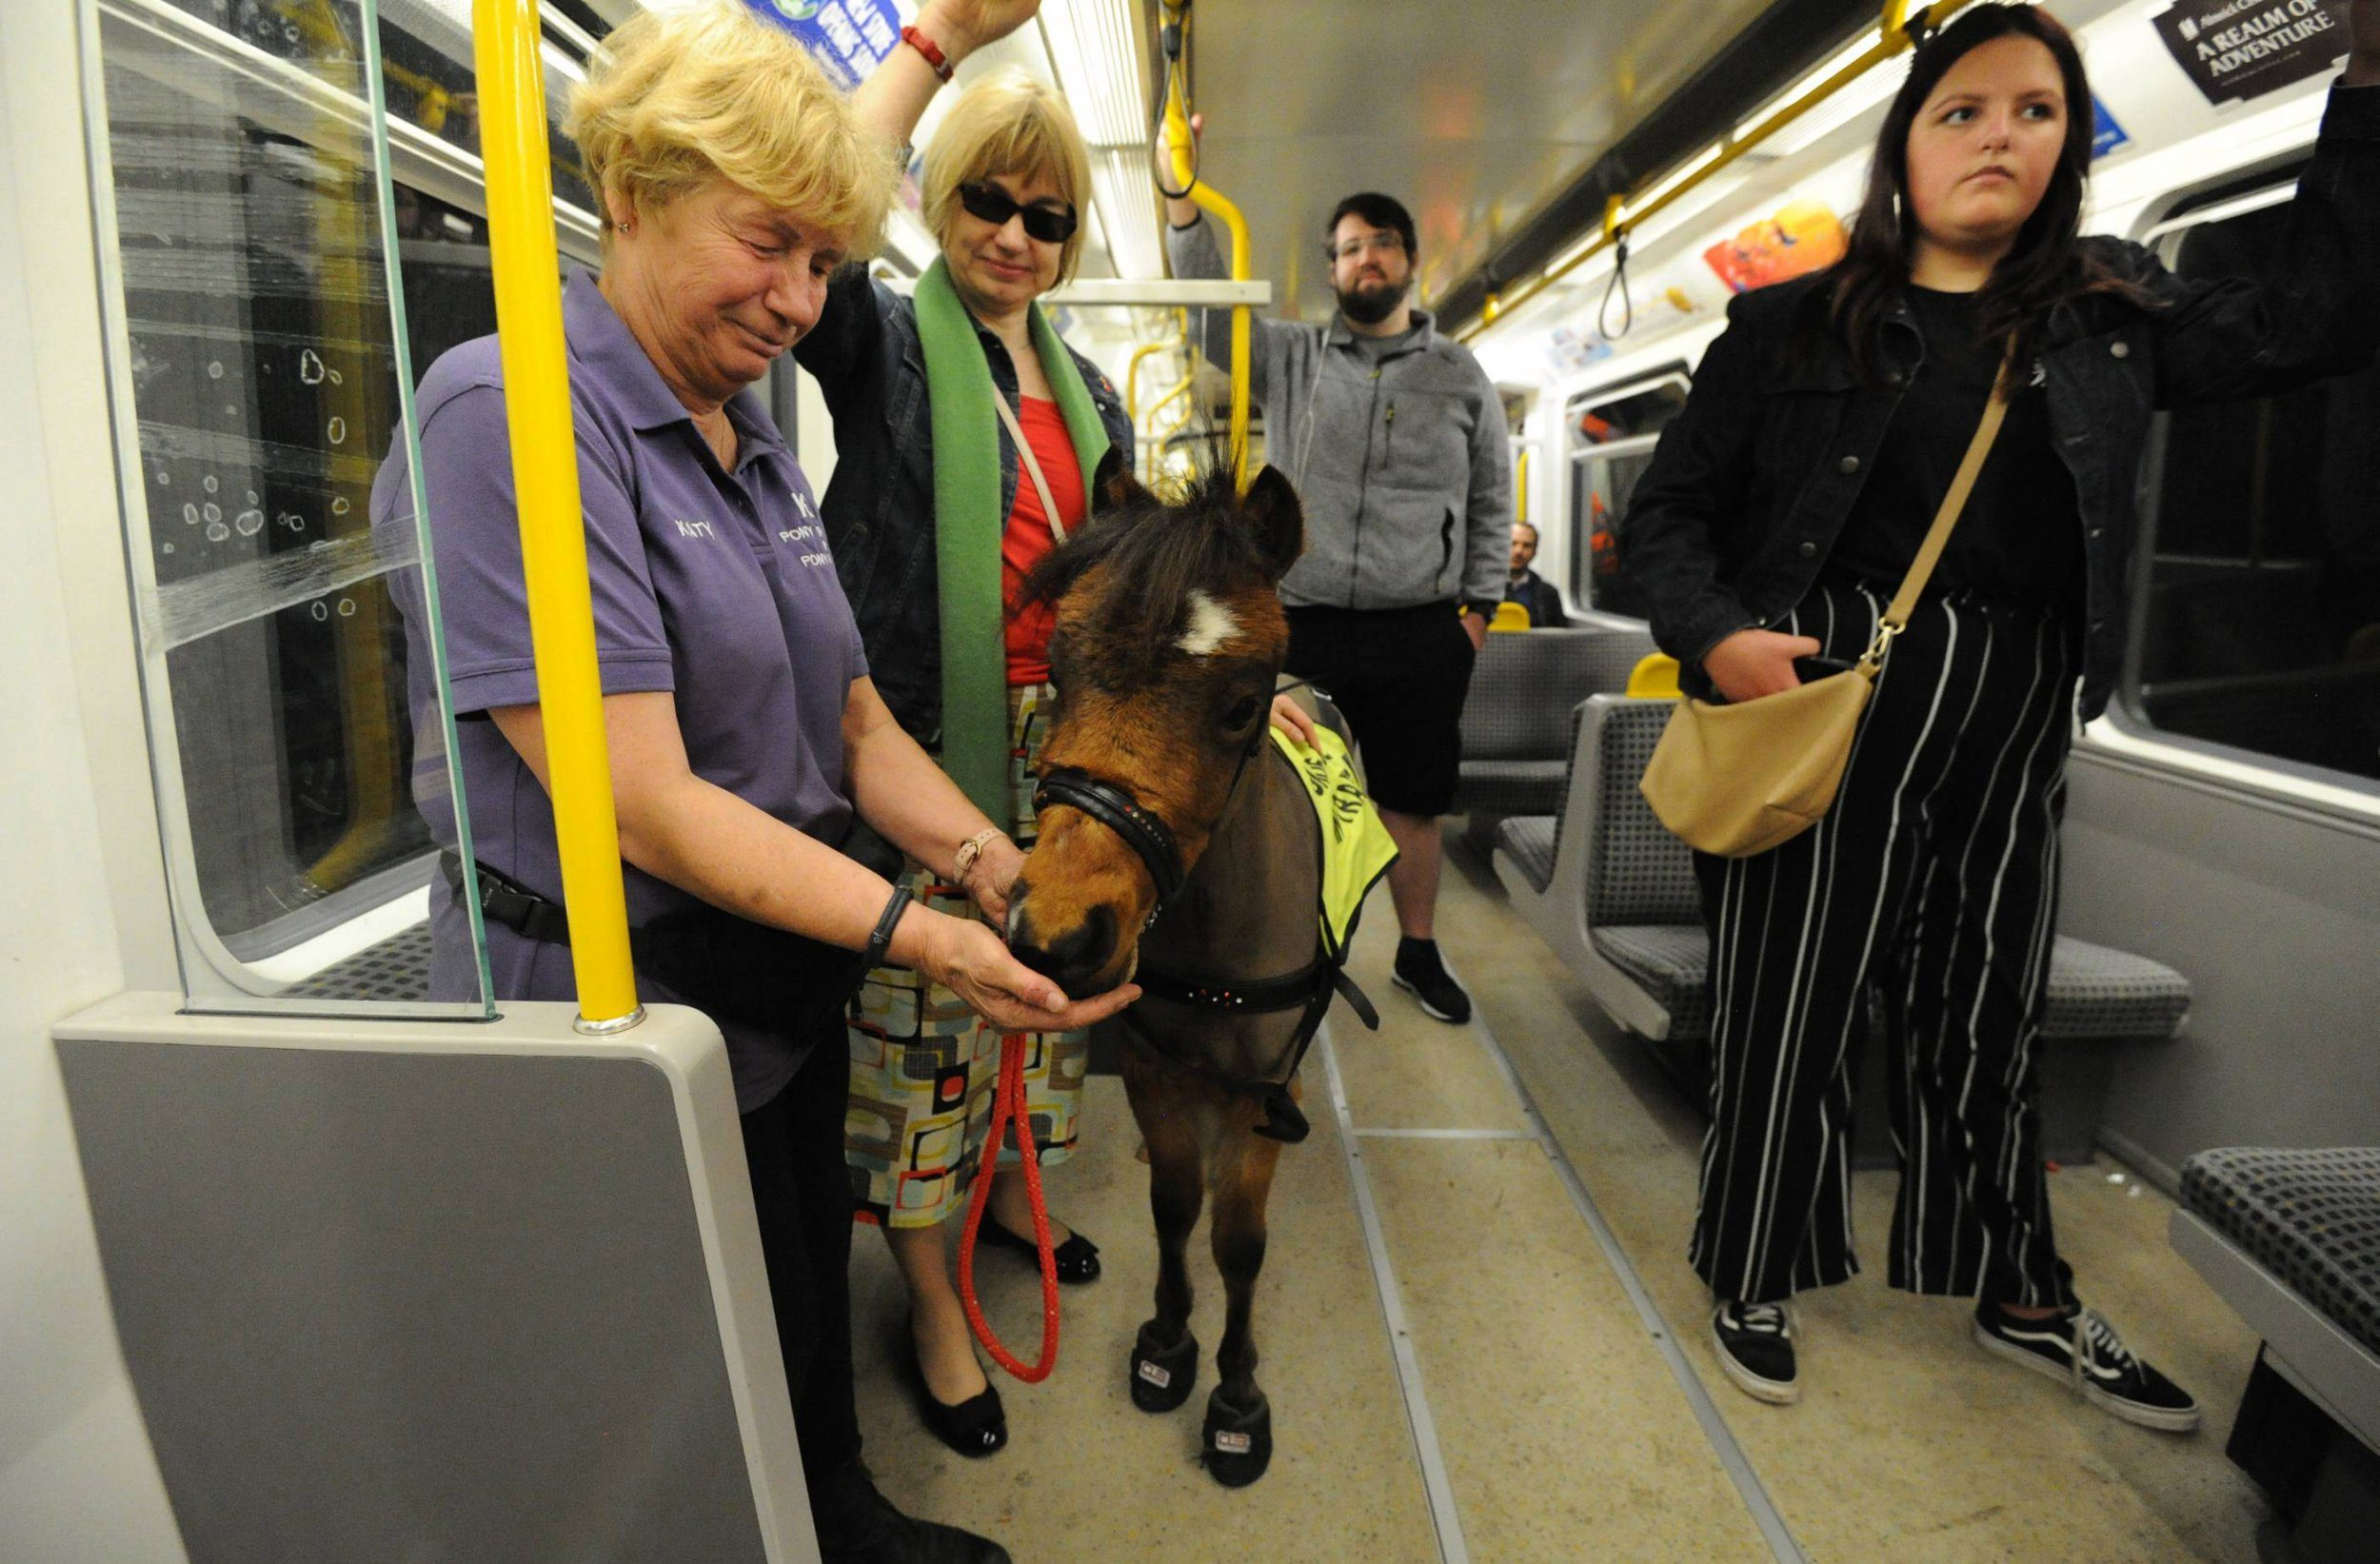 Dated: 18/04/2019 FOAL STEAM AHEAD ... Digby, the UK's first guide horse, who joined commuters on Newcastle city centre's Metro system while undergoing training in preparation for life in London, where he will lend a helping hand to Helena Hird, who regularly travels on the Underground. Pictured with Katy Smith, owner of KL Pony Therapy, based in Northallerton, North Yorkshire. See story and video by North News